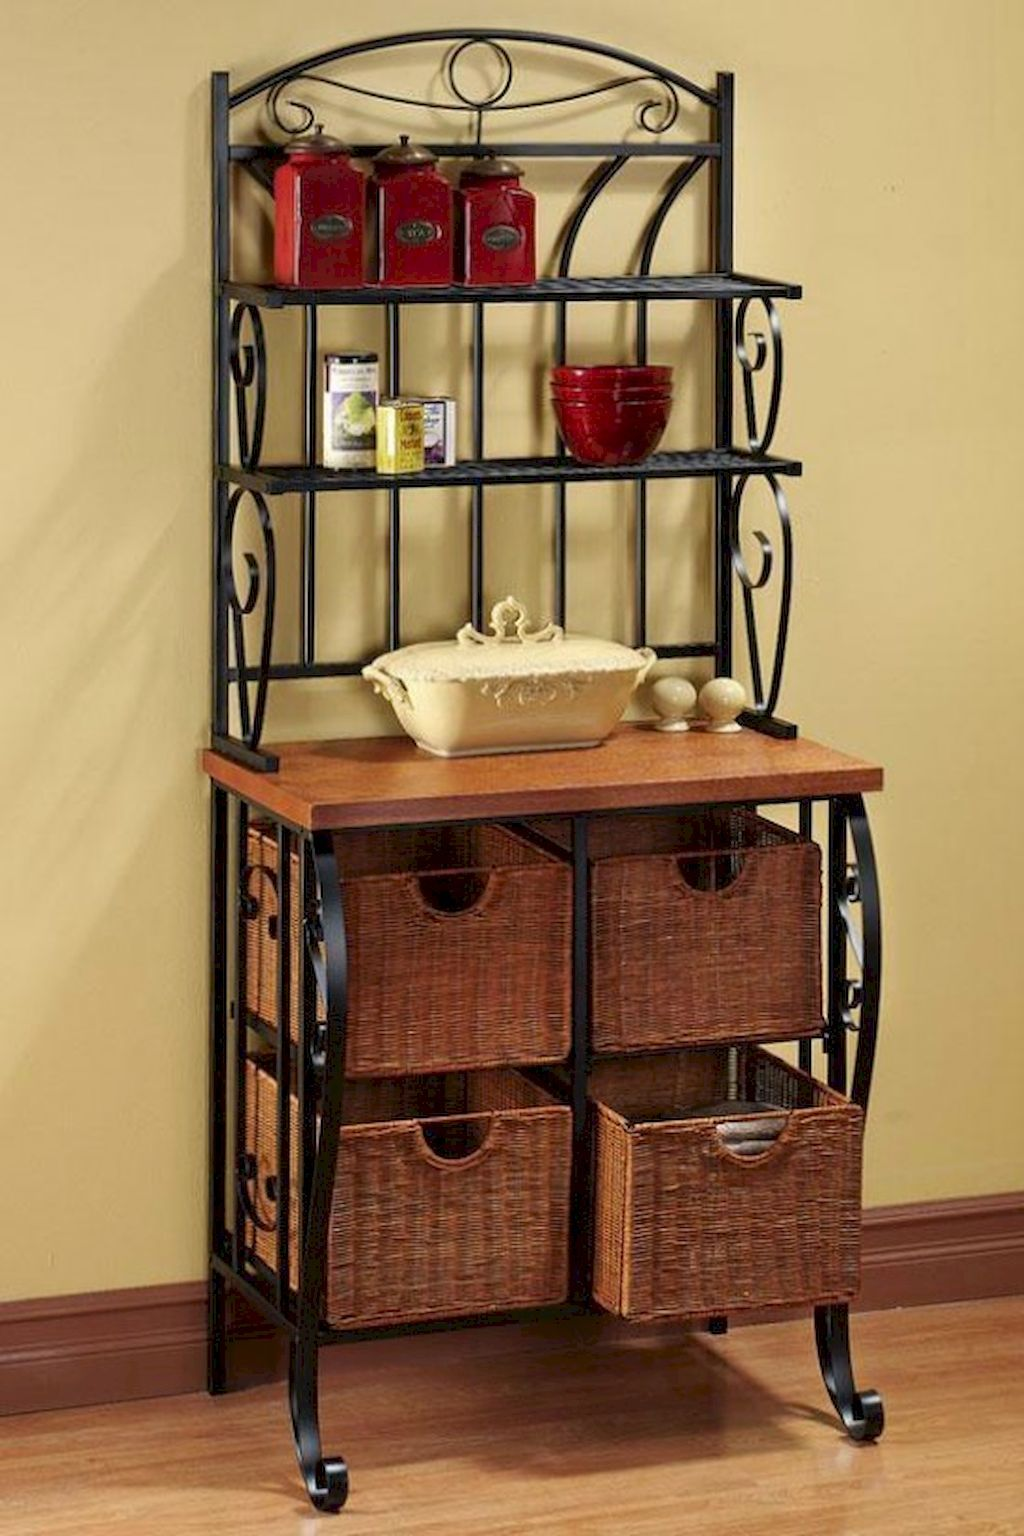 In Office Space With Baskets Toaster Microwave Water Pitcher Or